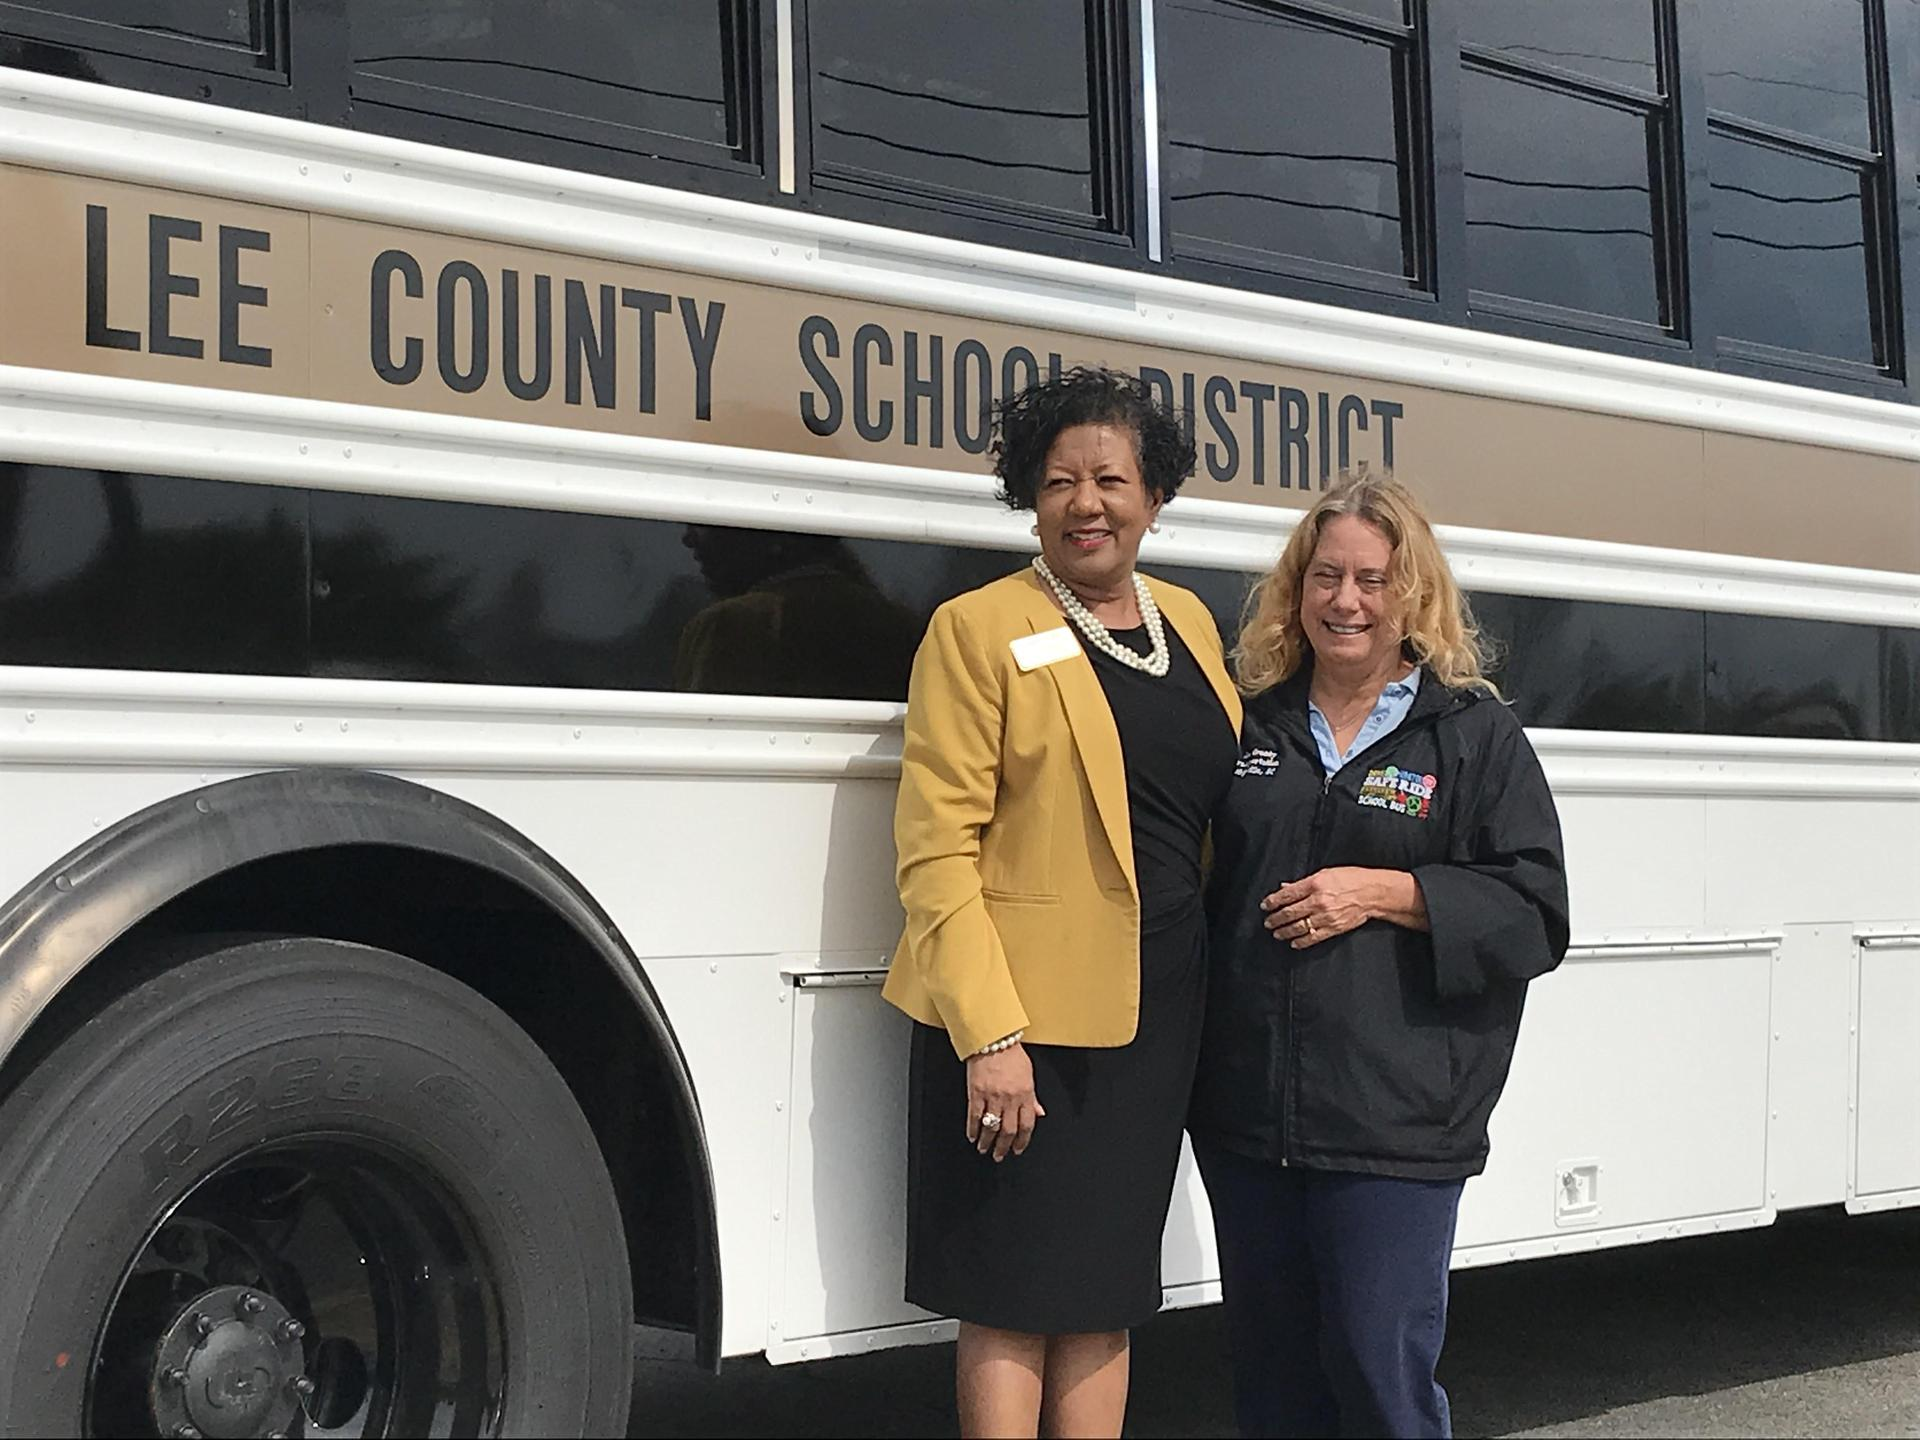 Transportation – Transportation – Lee County School District